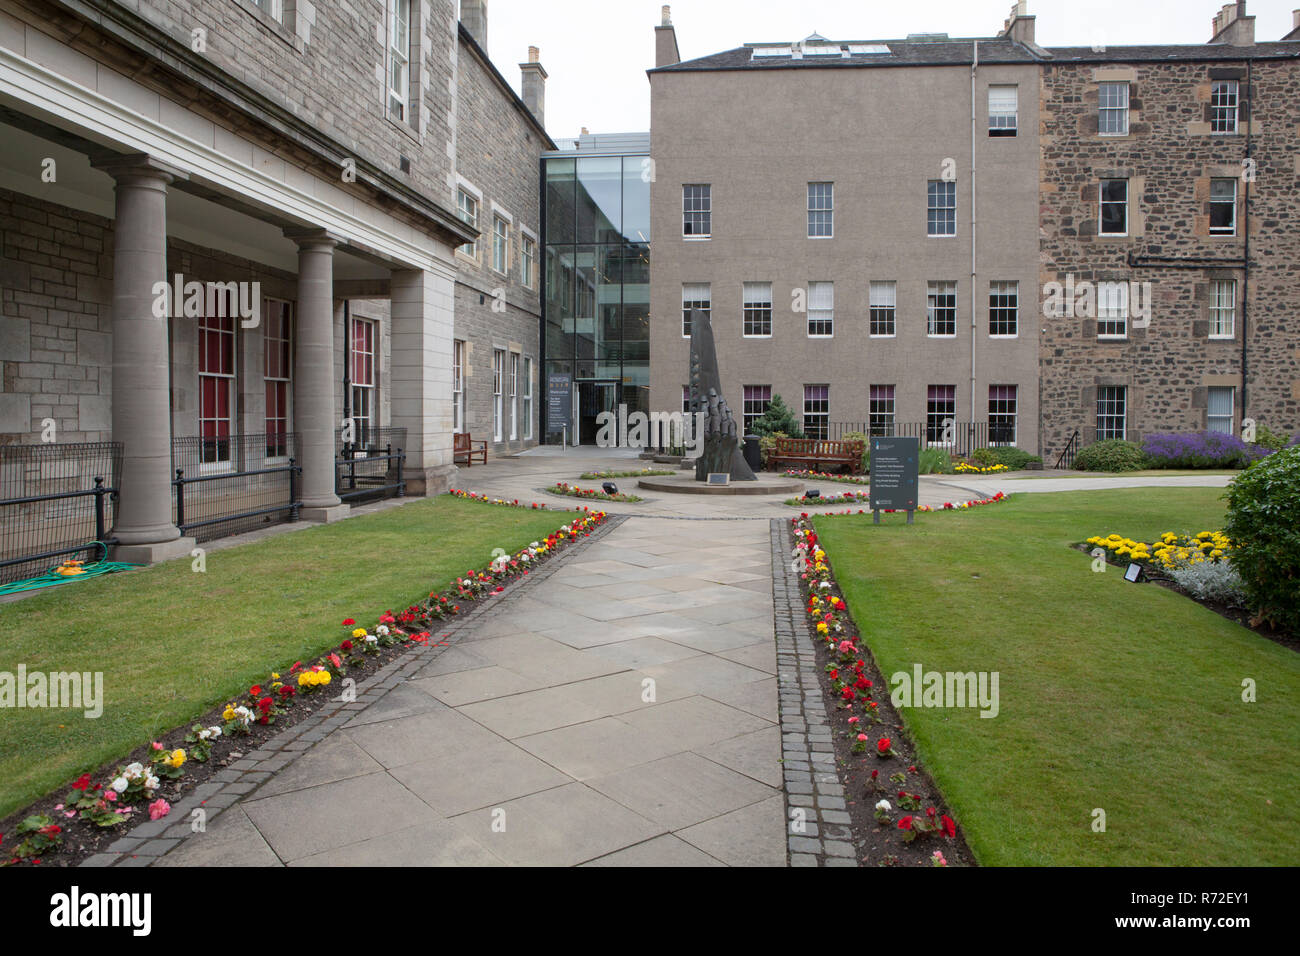 Courtyard of Surgeons' Hall Museums in Edinburgh which consists of the Wohl Pathology Museum, the History of Surgery Museum and The Dental Collection - Stock Image